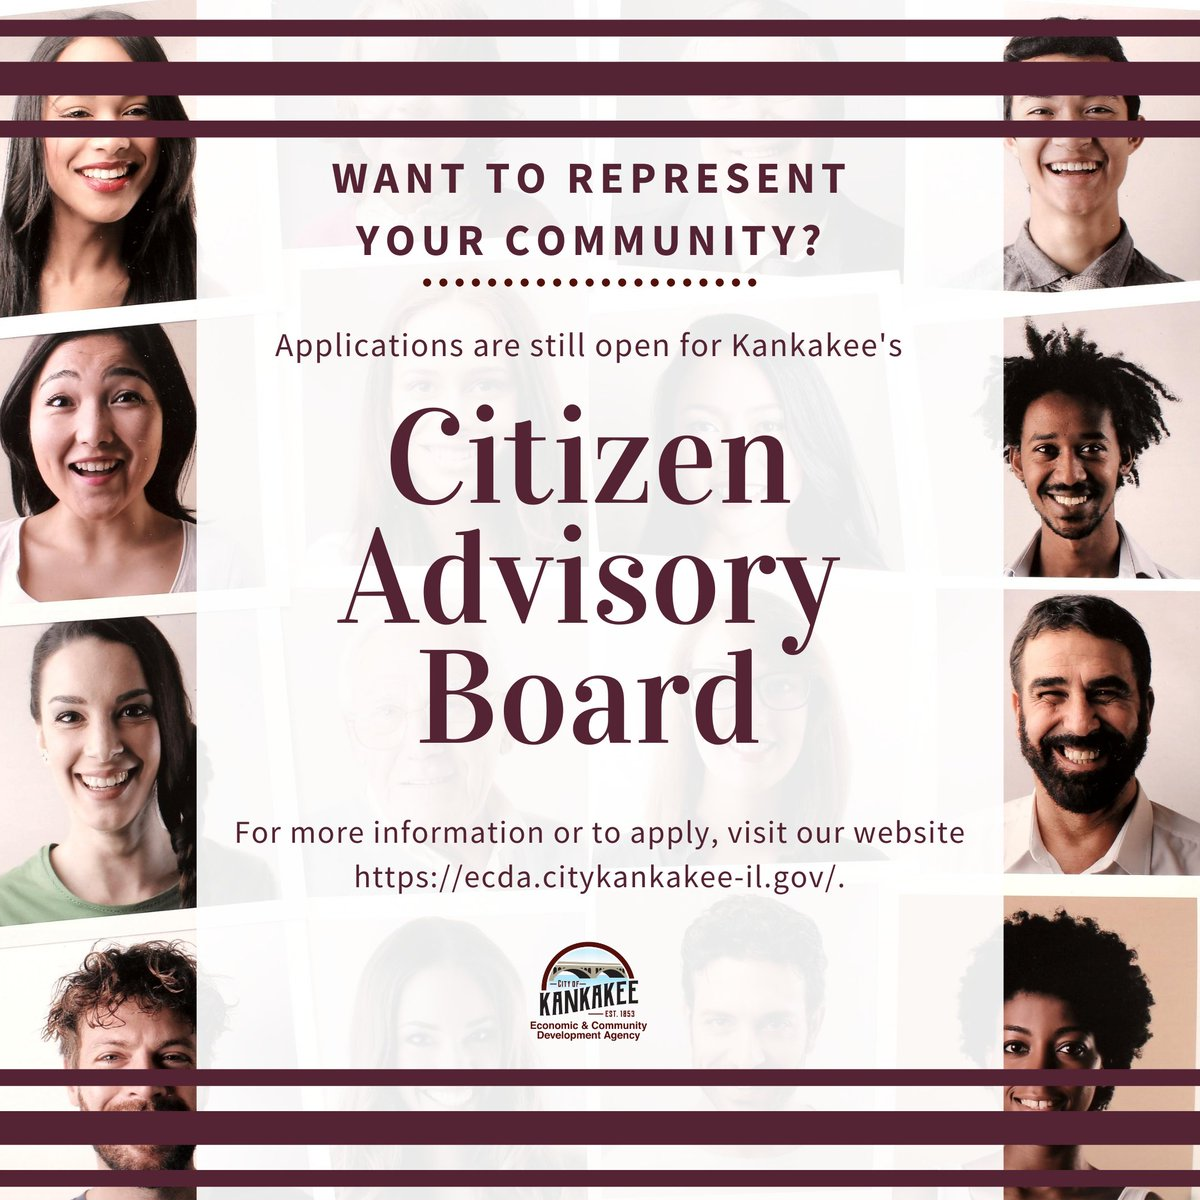 Are you passionate about your community and would like to help make a difference? Applications are still being accepted for the ECDA's Citizens Advisory Board. For more information or how to apply, visit .